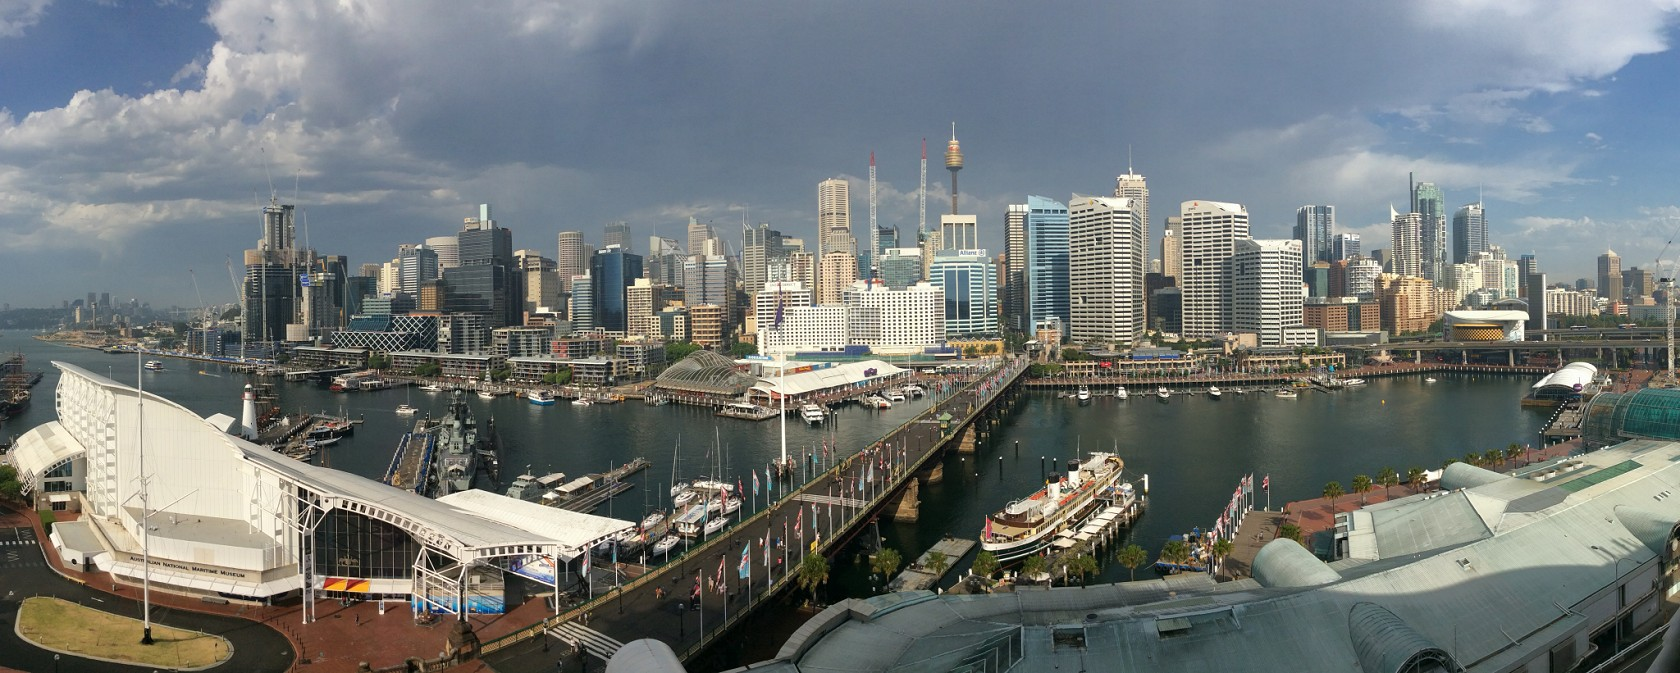 darling-harbour-2